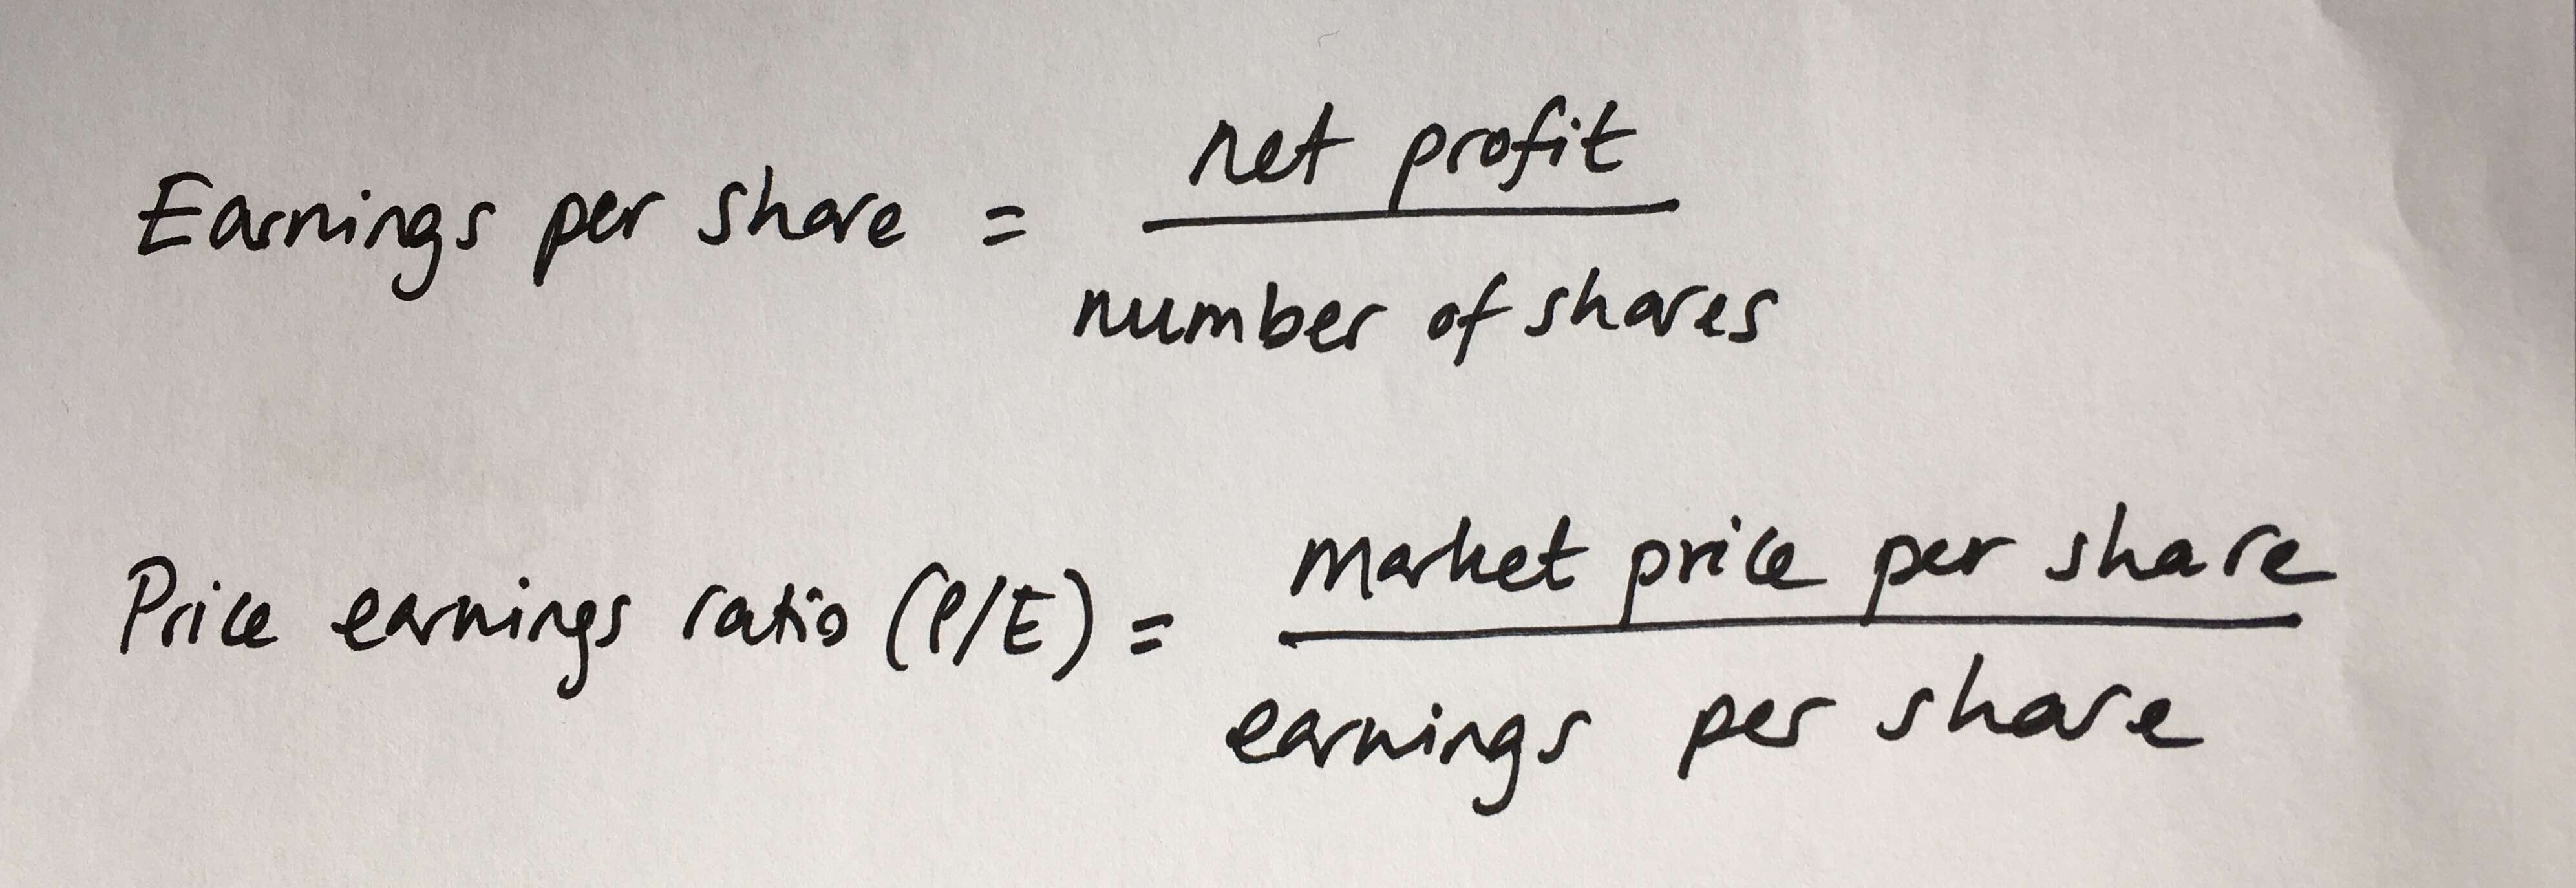 earnings per share and P/E ratio calculations